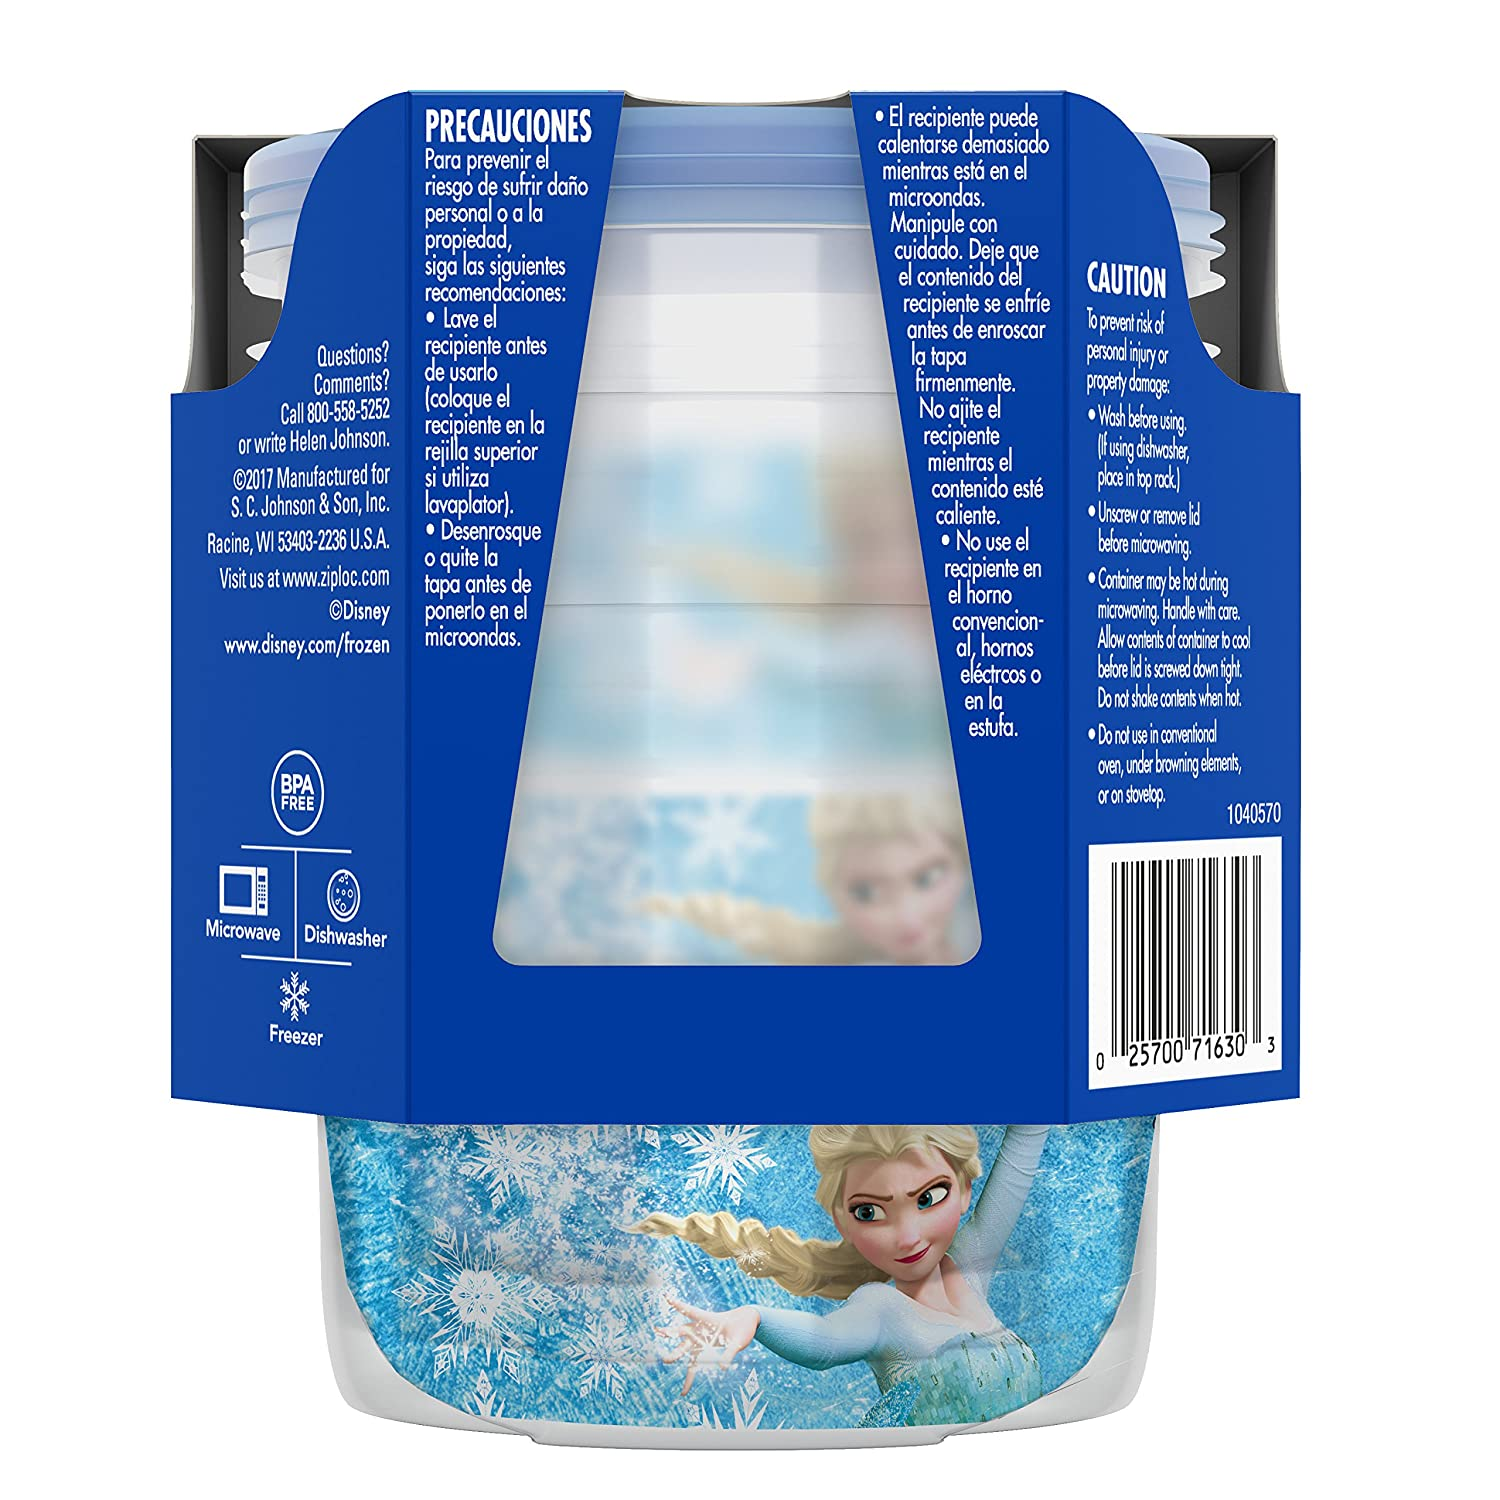 Amazon.com: Ziploc Brand Twist n Loc Containers Featuring Disney Frozen Design, Small, 16 oz, 3 ct: Health & Personal Care